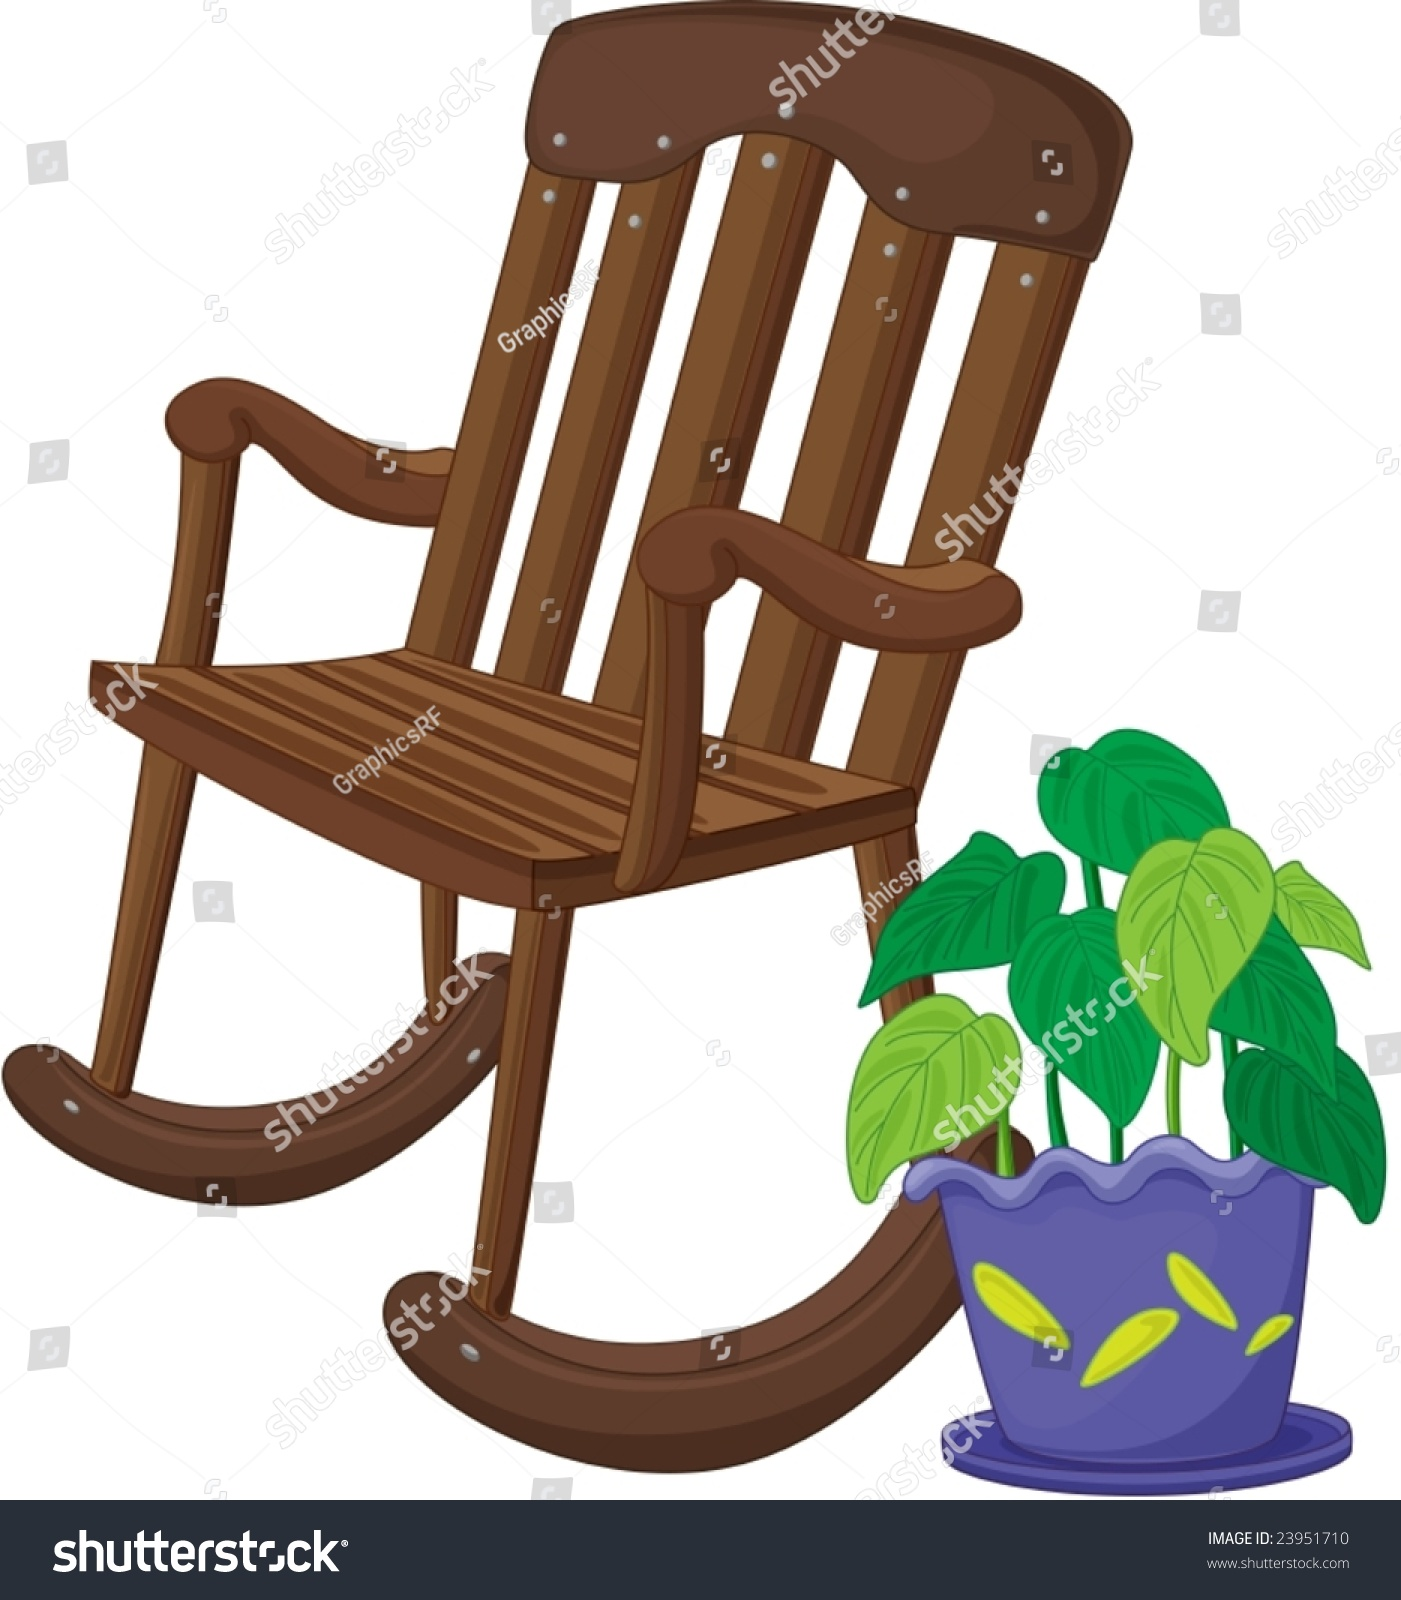 Illustration Wooden Rocking Chair Stock Vector Shutterstock